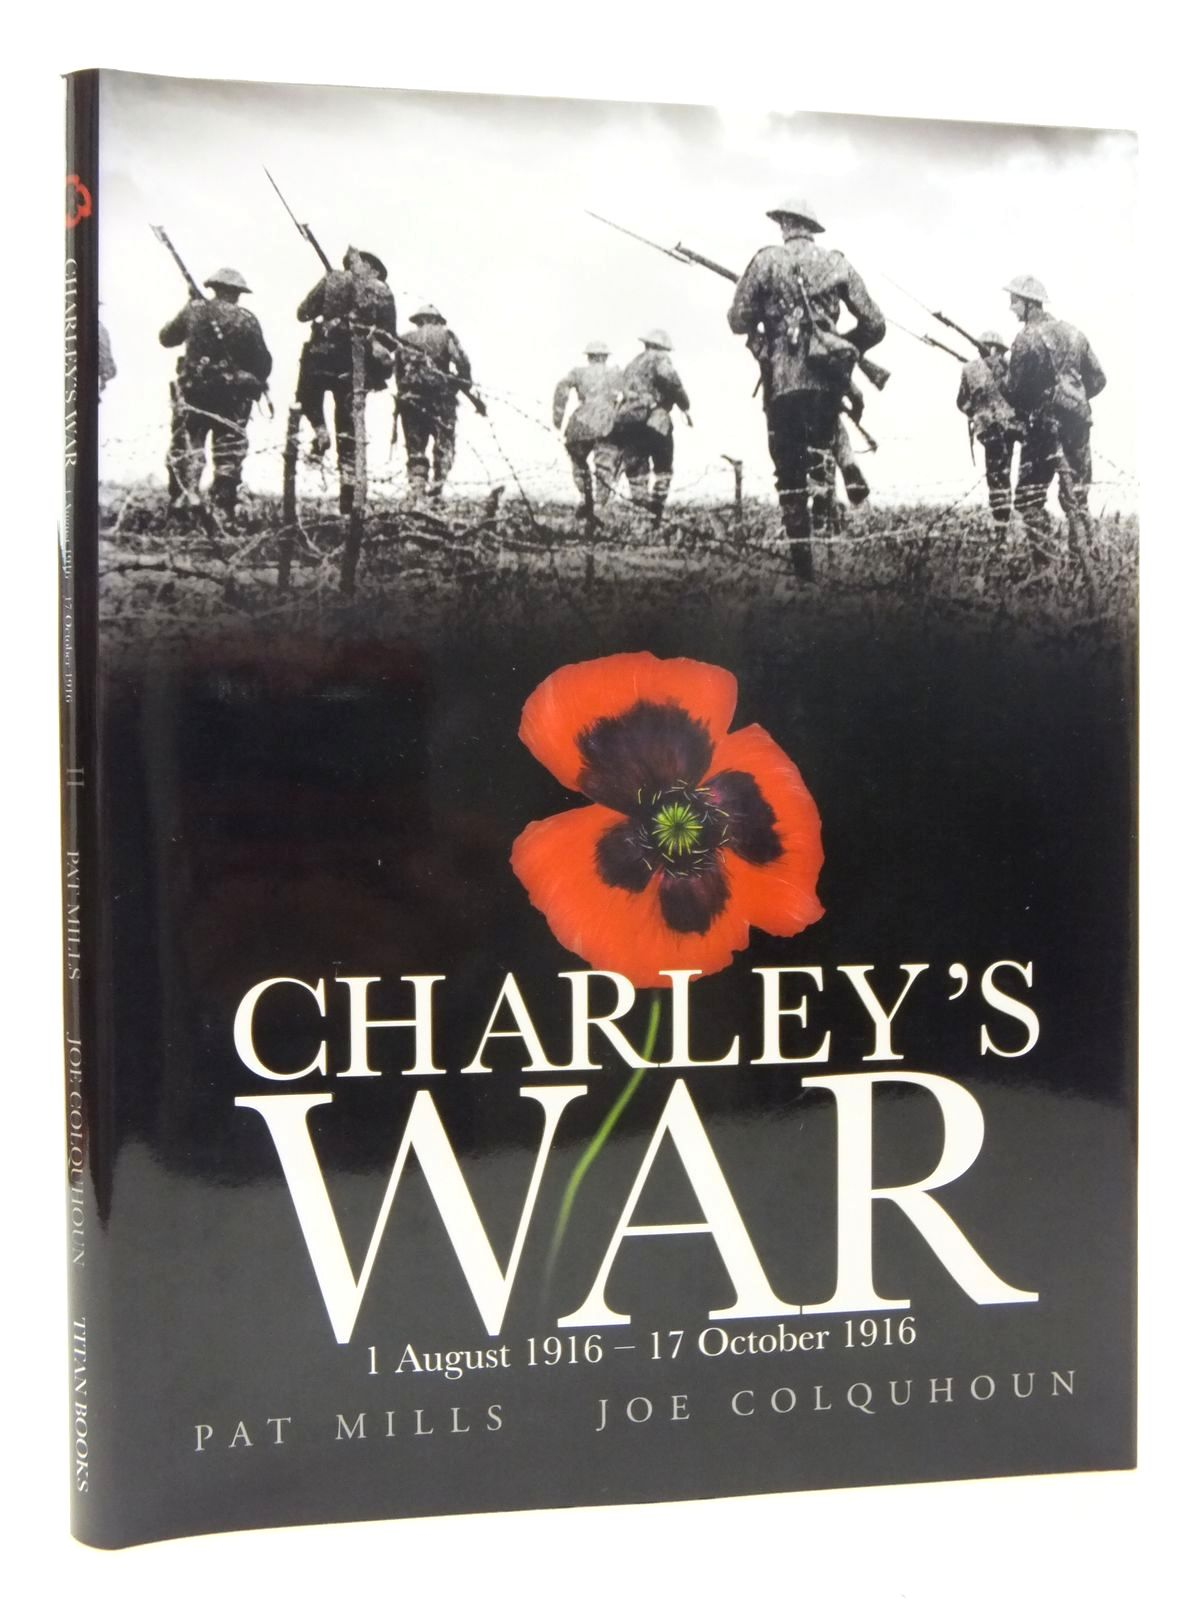 Photo of CHARLEY'S WAR 1 AUGUST 1916 - 17 OCTOBER 1916 written by Mills, Pat illustrated by Colquhoun, Joe published by Titan Books (STOCK CODE: 2123458)  for sale by Stella & Rose's Books